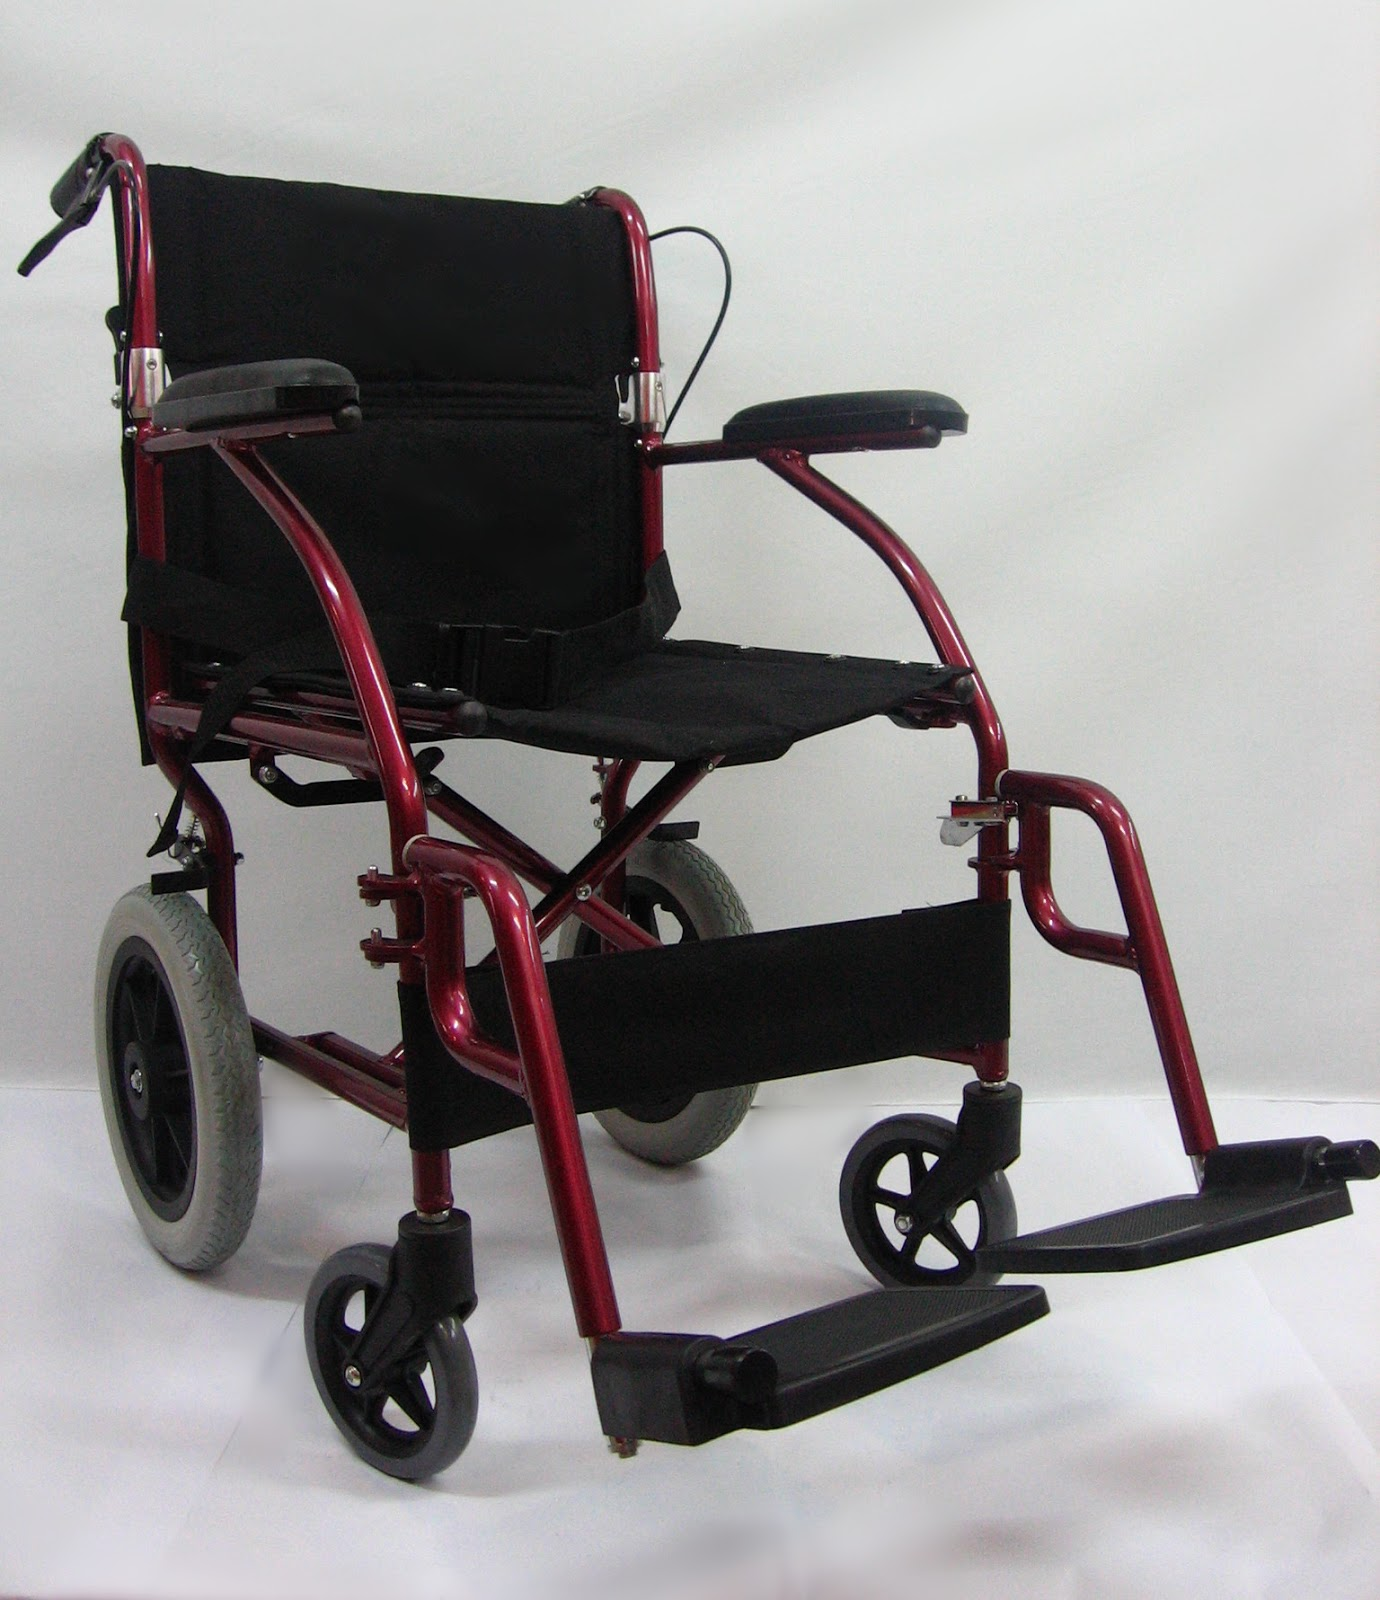 Kerusi roda memindah amat ringan 特轻交通轮椅 Super light weight transit chair ( net weight 9kg to 10kg )